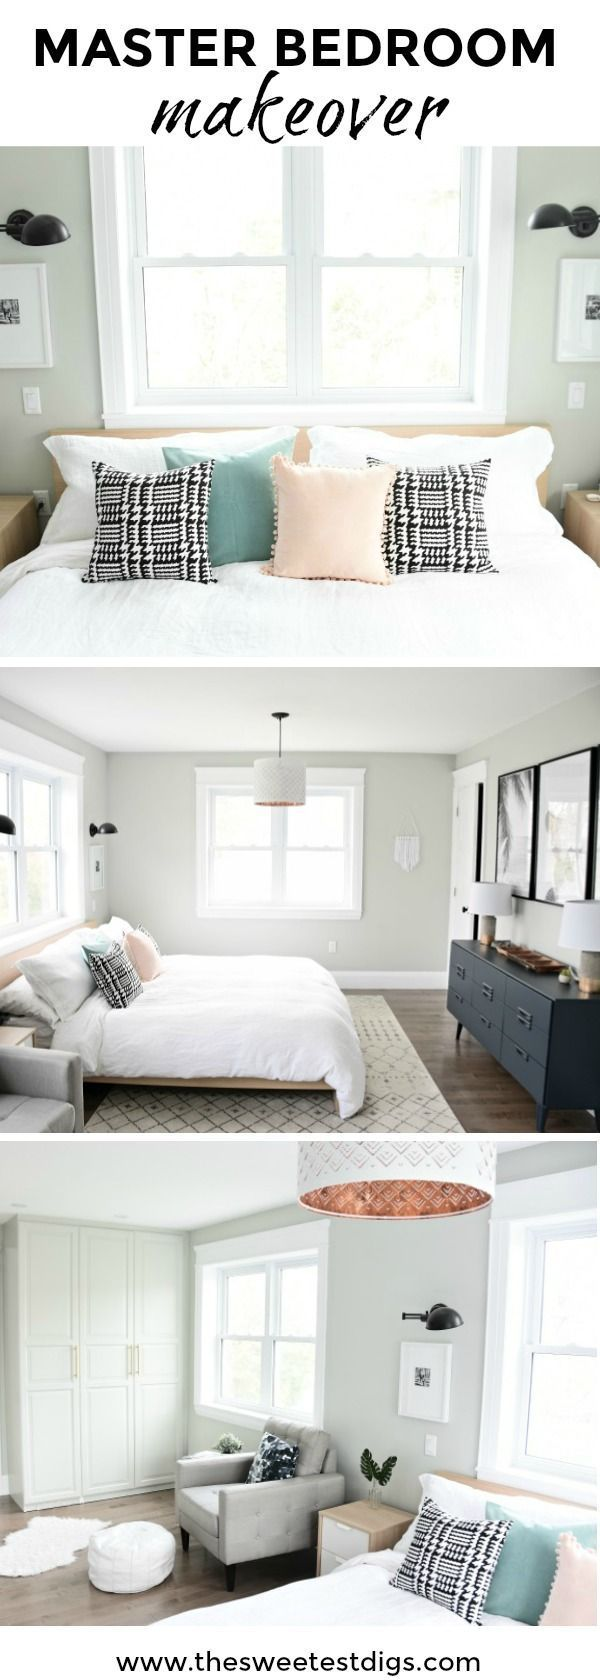 Get The Look An Inspiring Master Bedroom Makeover is part of Modern bedroom Makeover - Check out this master bedroom makeover and find out how to create the same modern, eclectic design for your own bedroom, all on a budget